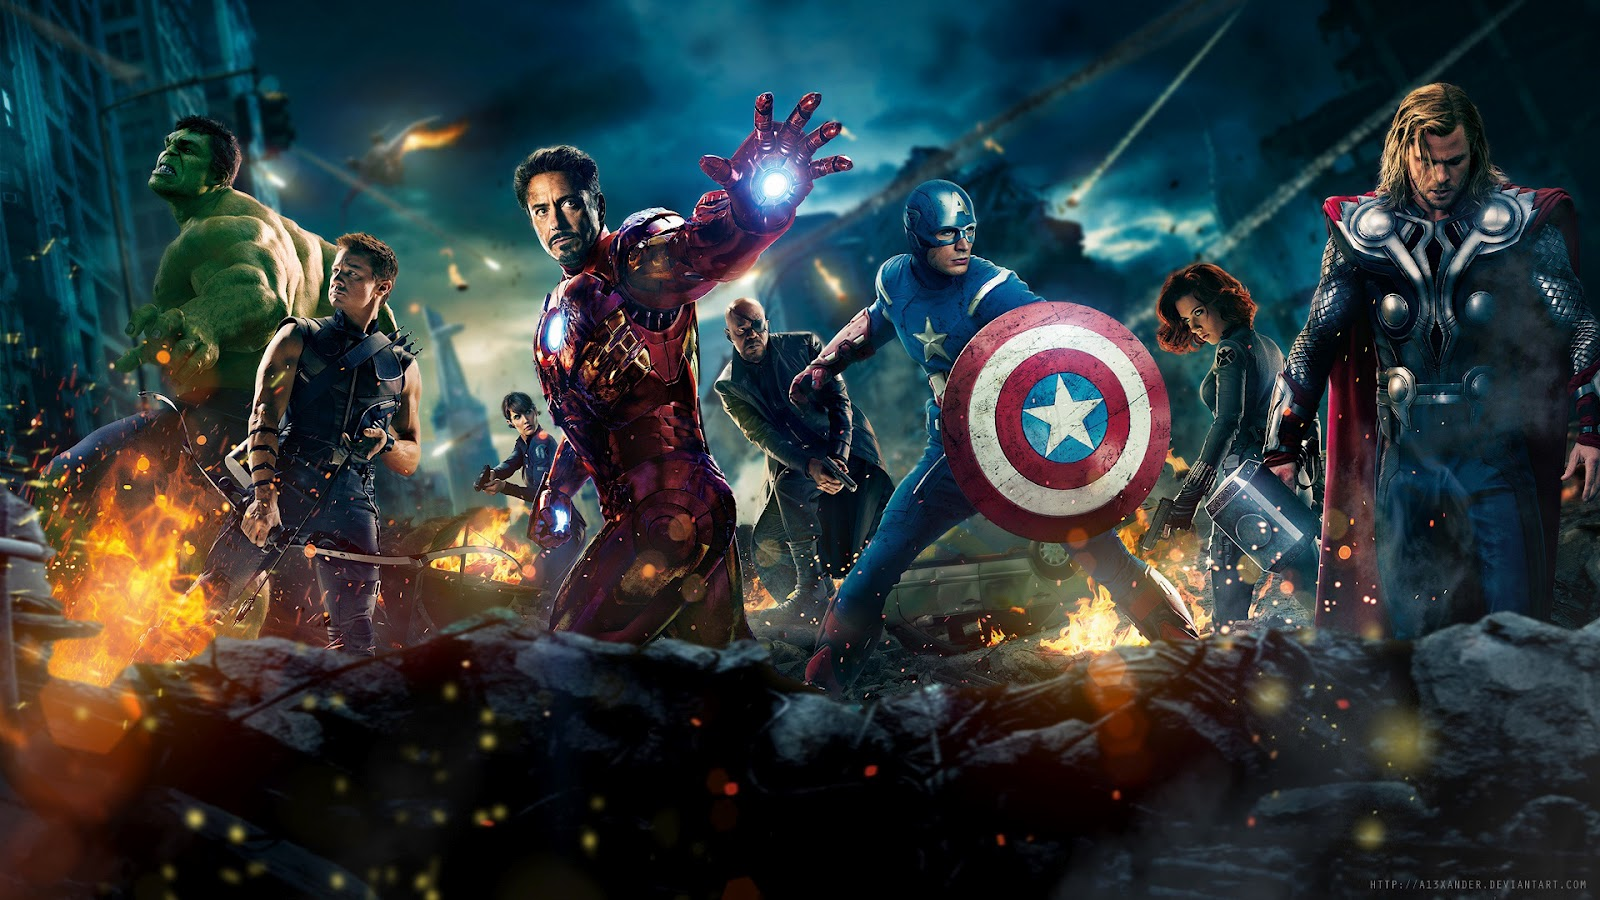 http://3.bp.blogspot.com/-H3TiDzSzj8g/T5gRFHsOppI/AAAAAAAACzg/DNDljoB364Q/s1600/avengers-2012-full-hd-wallpaper-1920x1080-movie-1080p.jpg